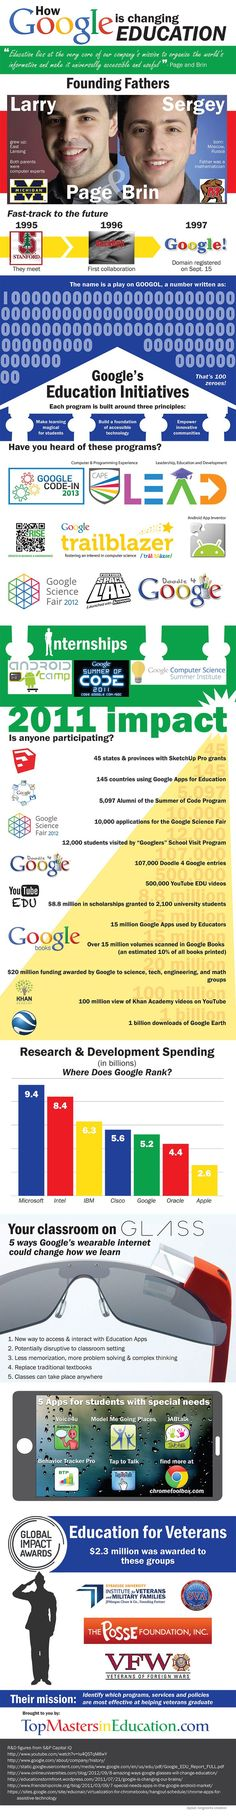 Educational infographic : How Google is changing #education